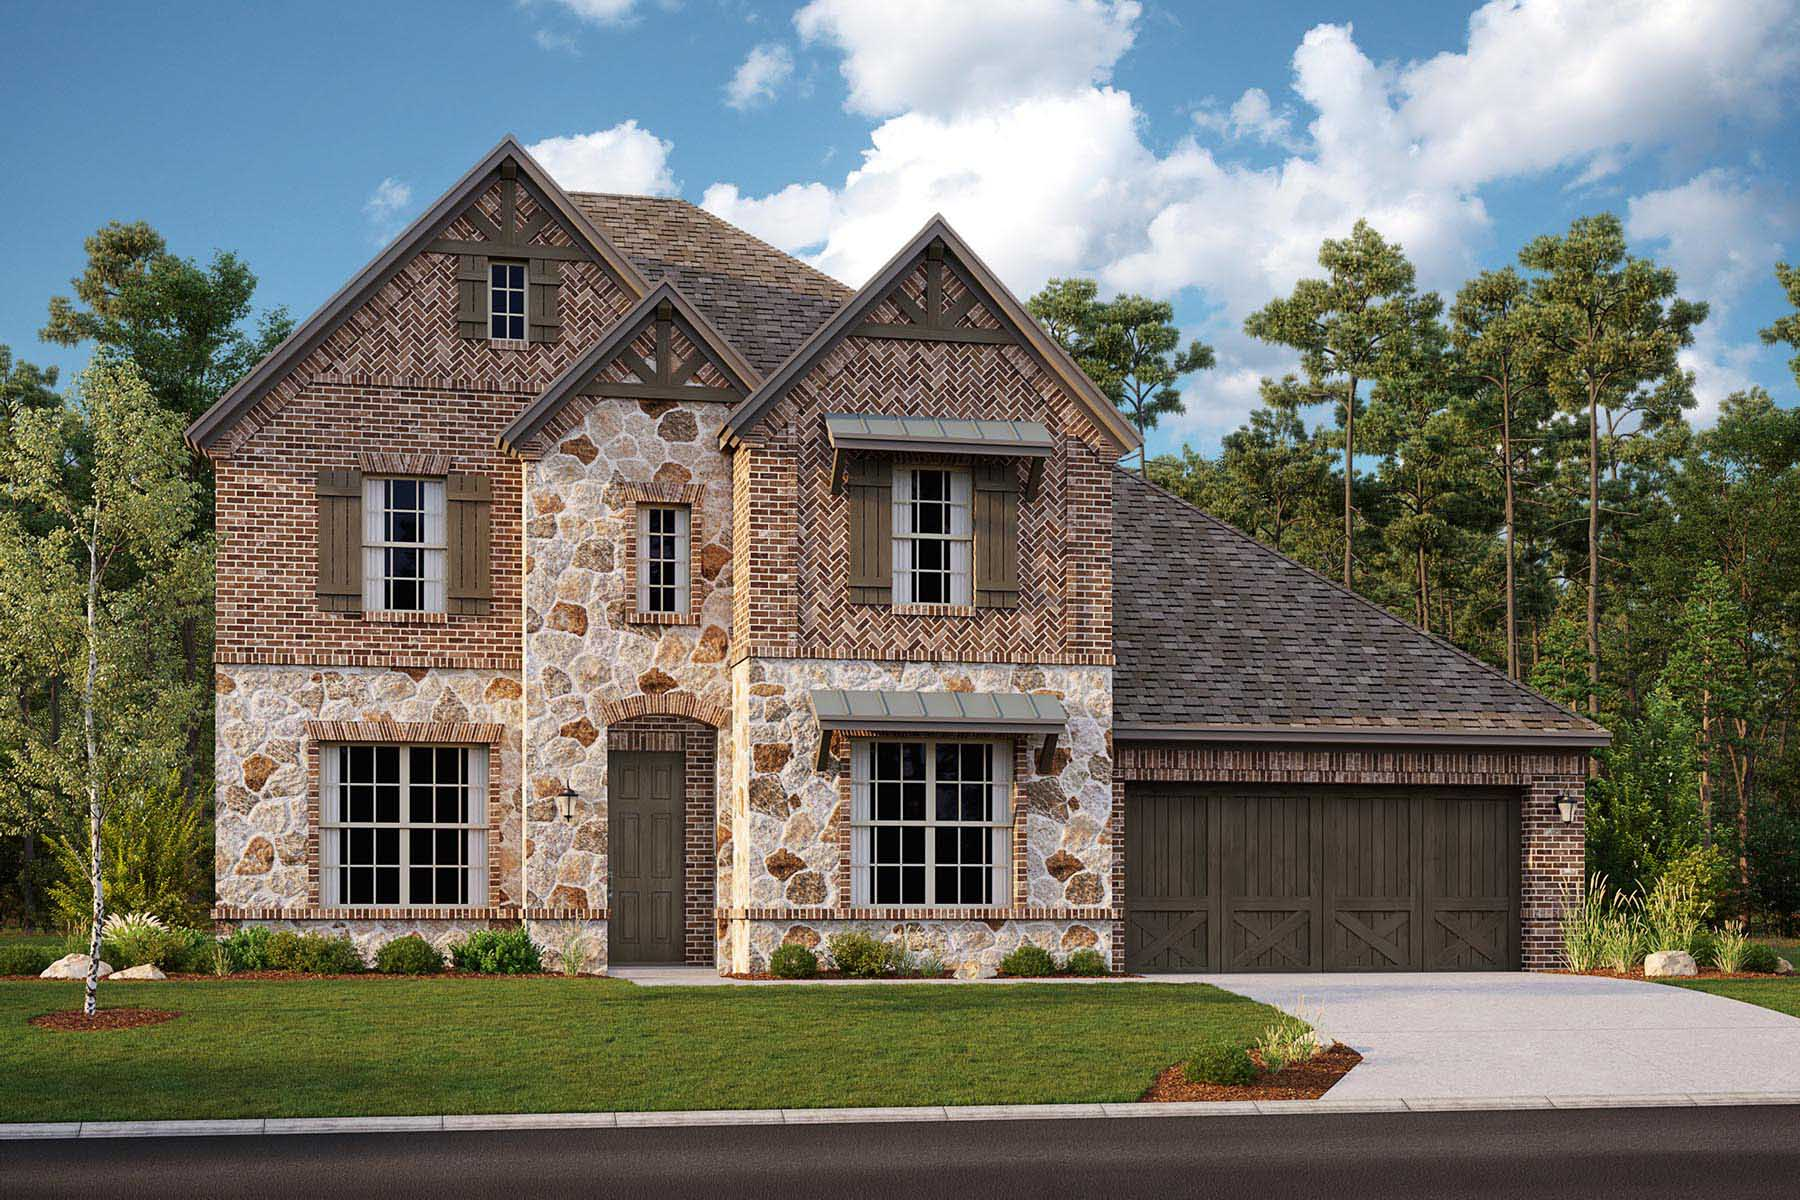 Shelby Plan DAL_Shelby_D_ElevationExt_1800x1200 at Bridges at Preston Crossing in Gunter Texas by Mattamy Homes